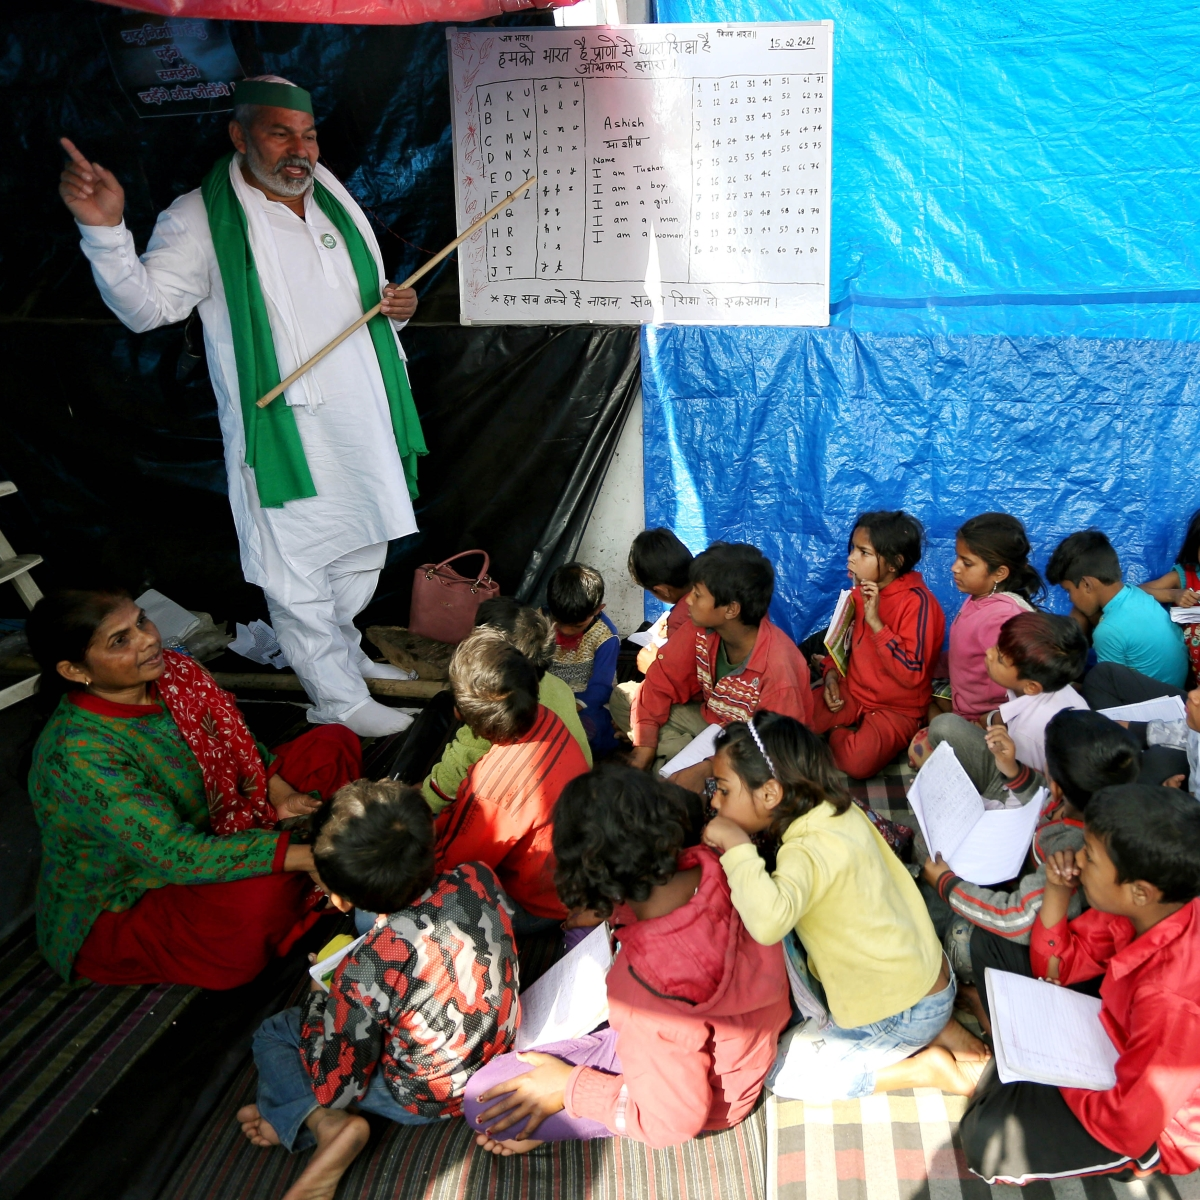 Farmer leader Rakesh Tikait teaches children at makeshift school at protest site